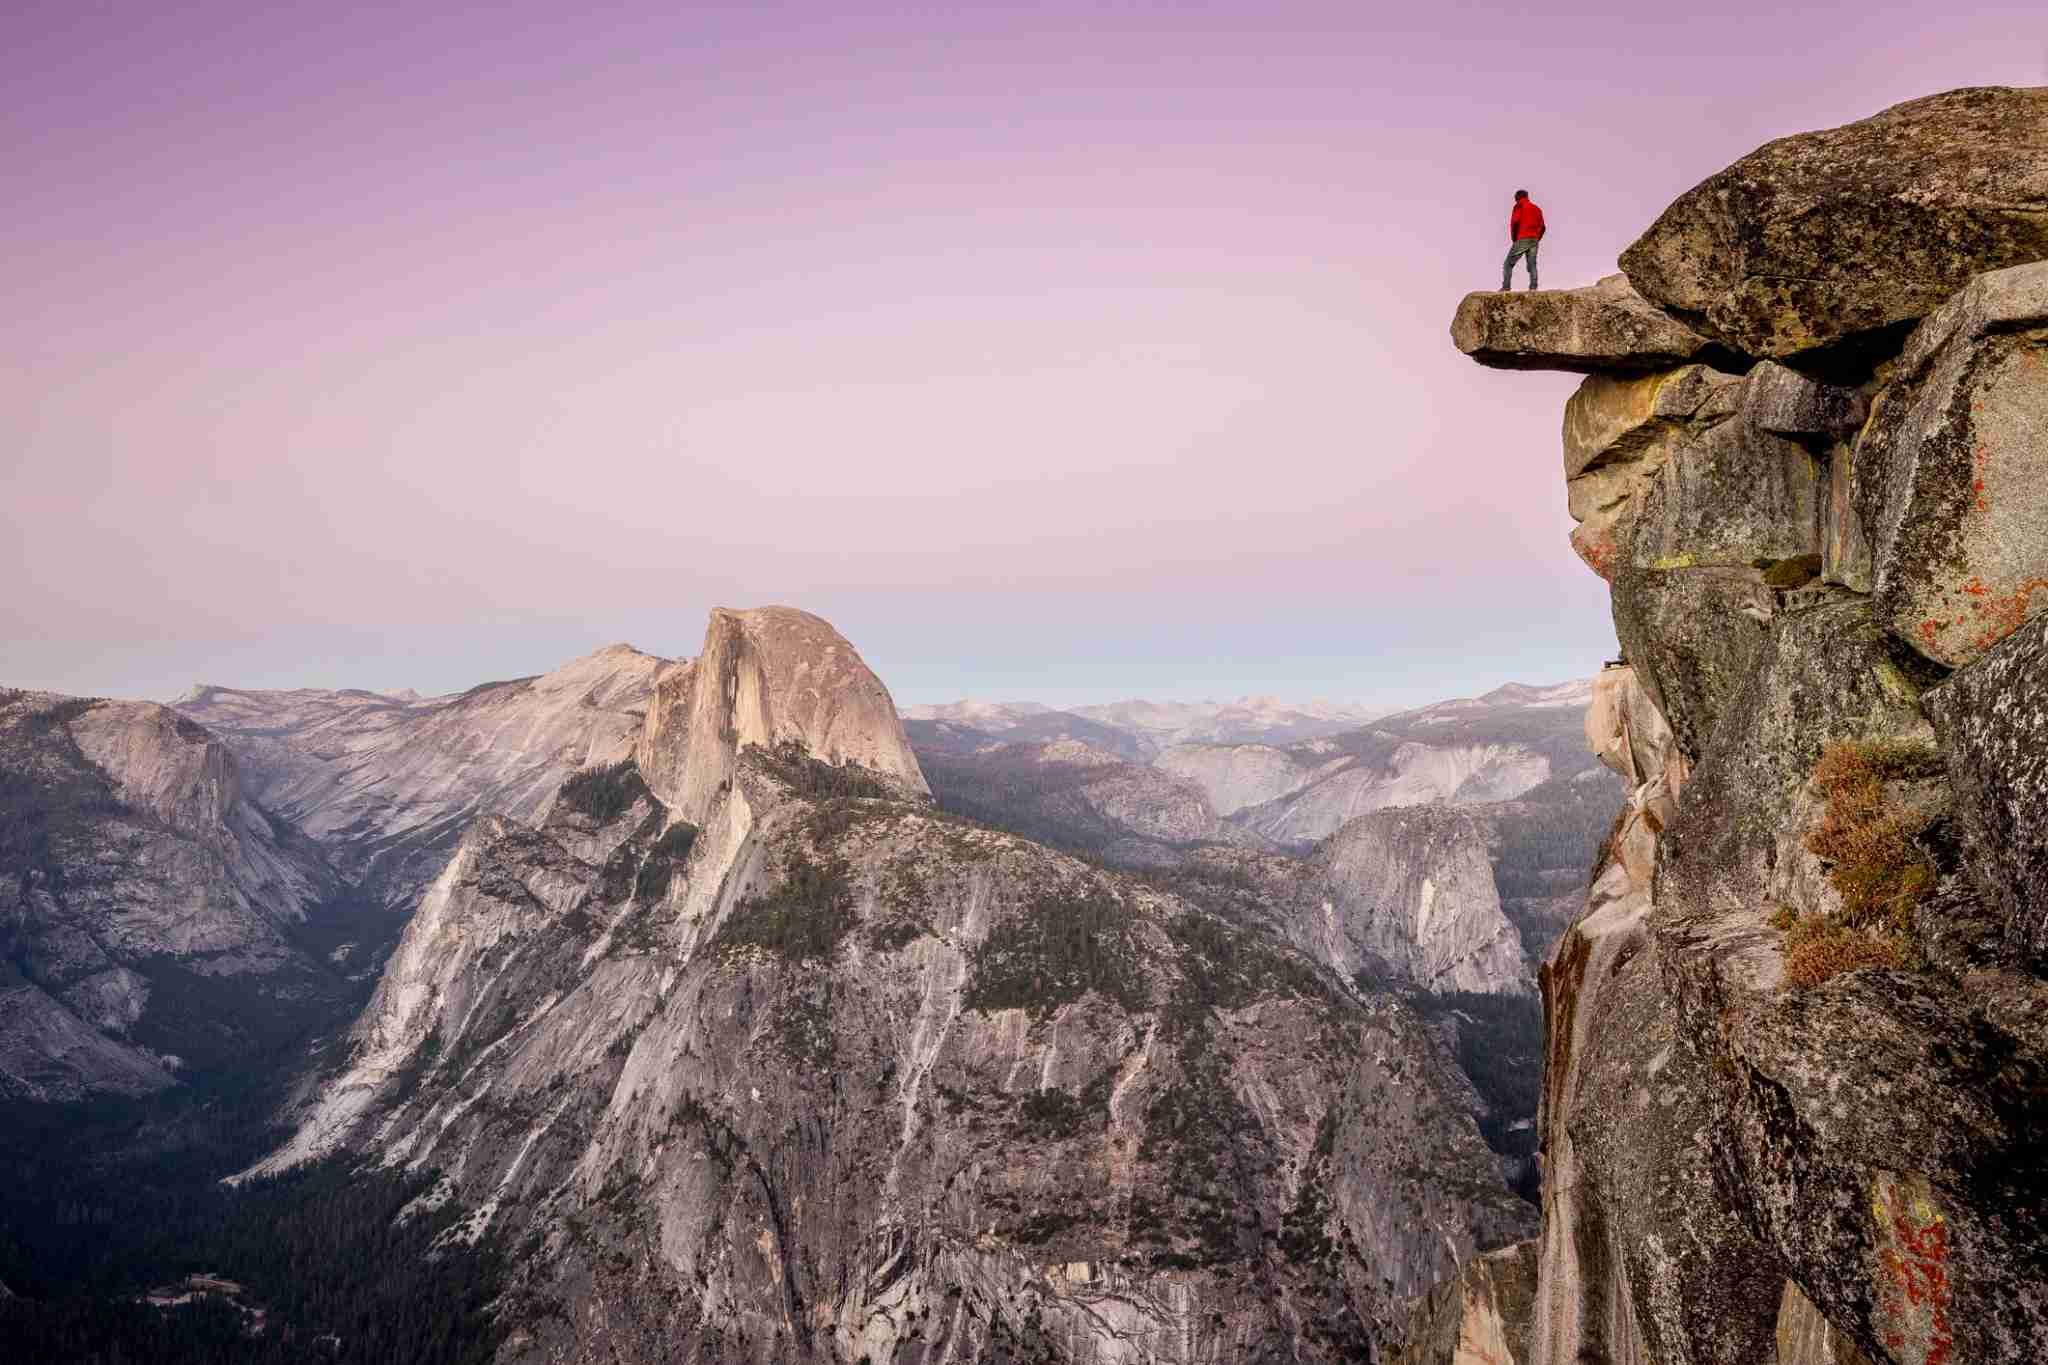 A fearless male hiker is standing on an overhanging rock at Glacier Point enjoying the breathtaking view towards famous Half Dome in beautiful post sunset twilight in summer, Yosemite National Park, California (Photo by bluejayphoto/Getty Images)